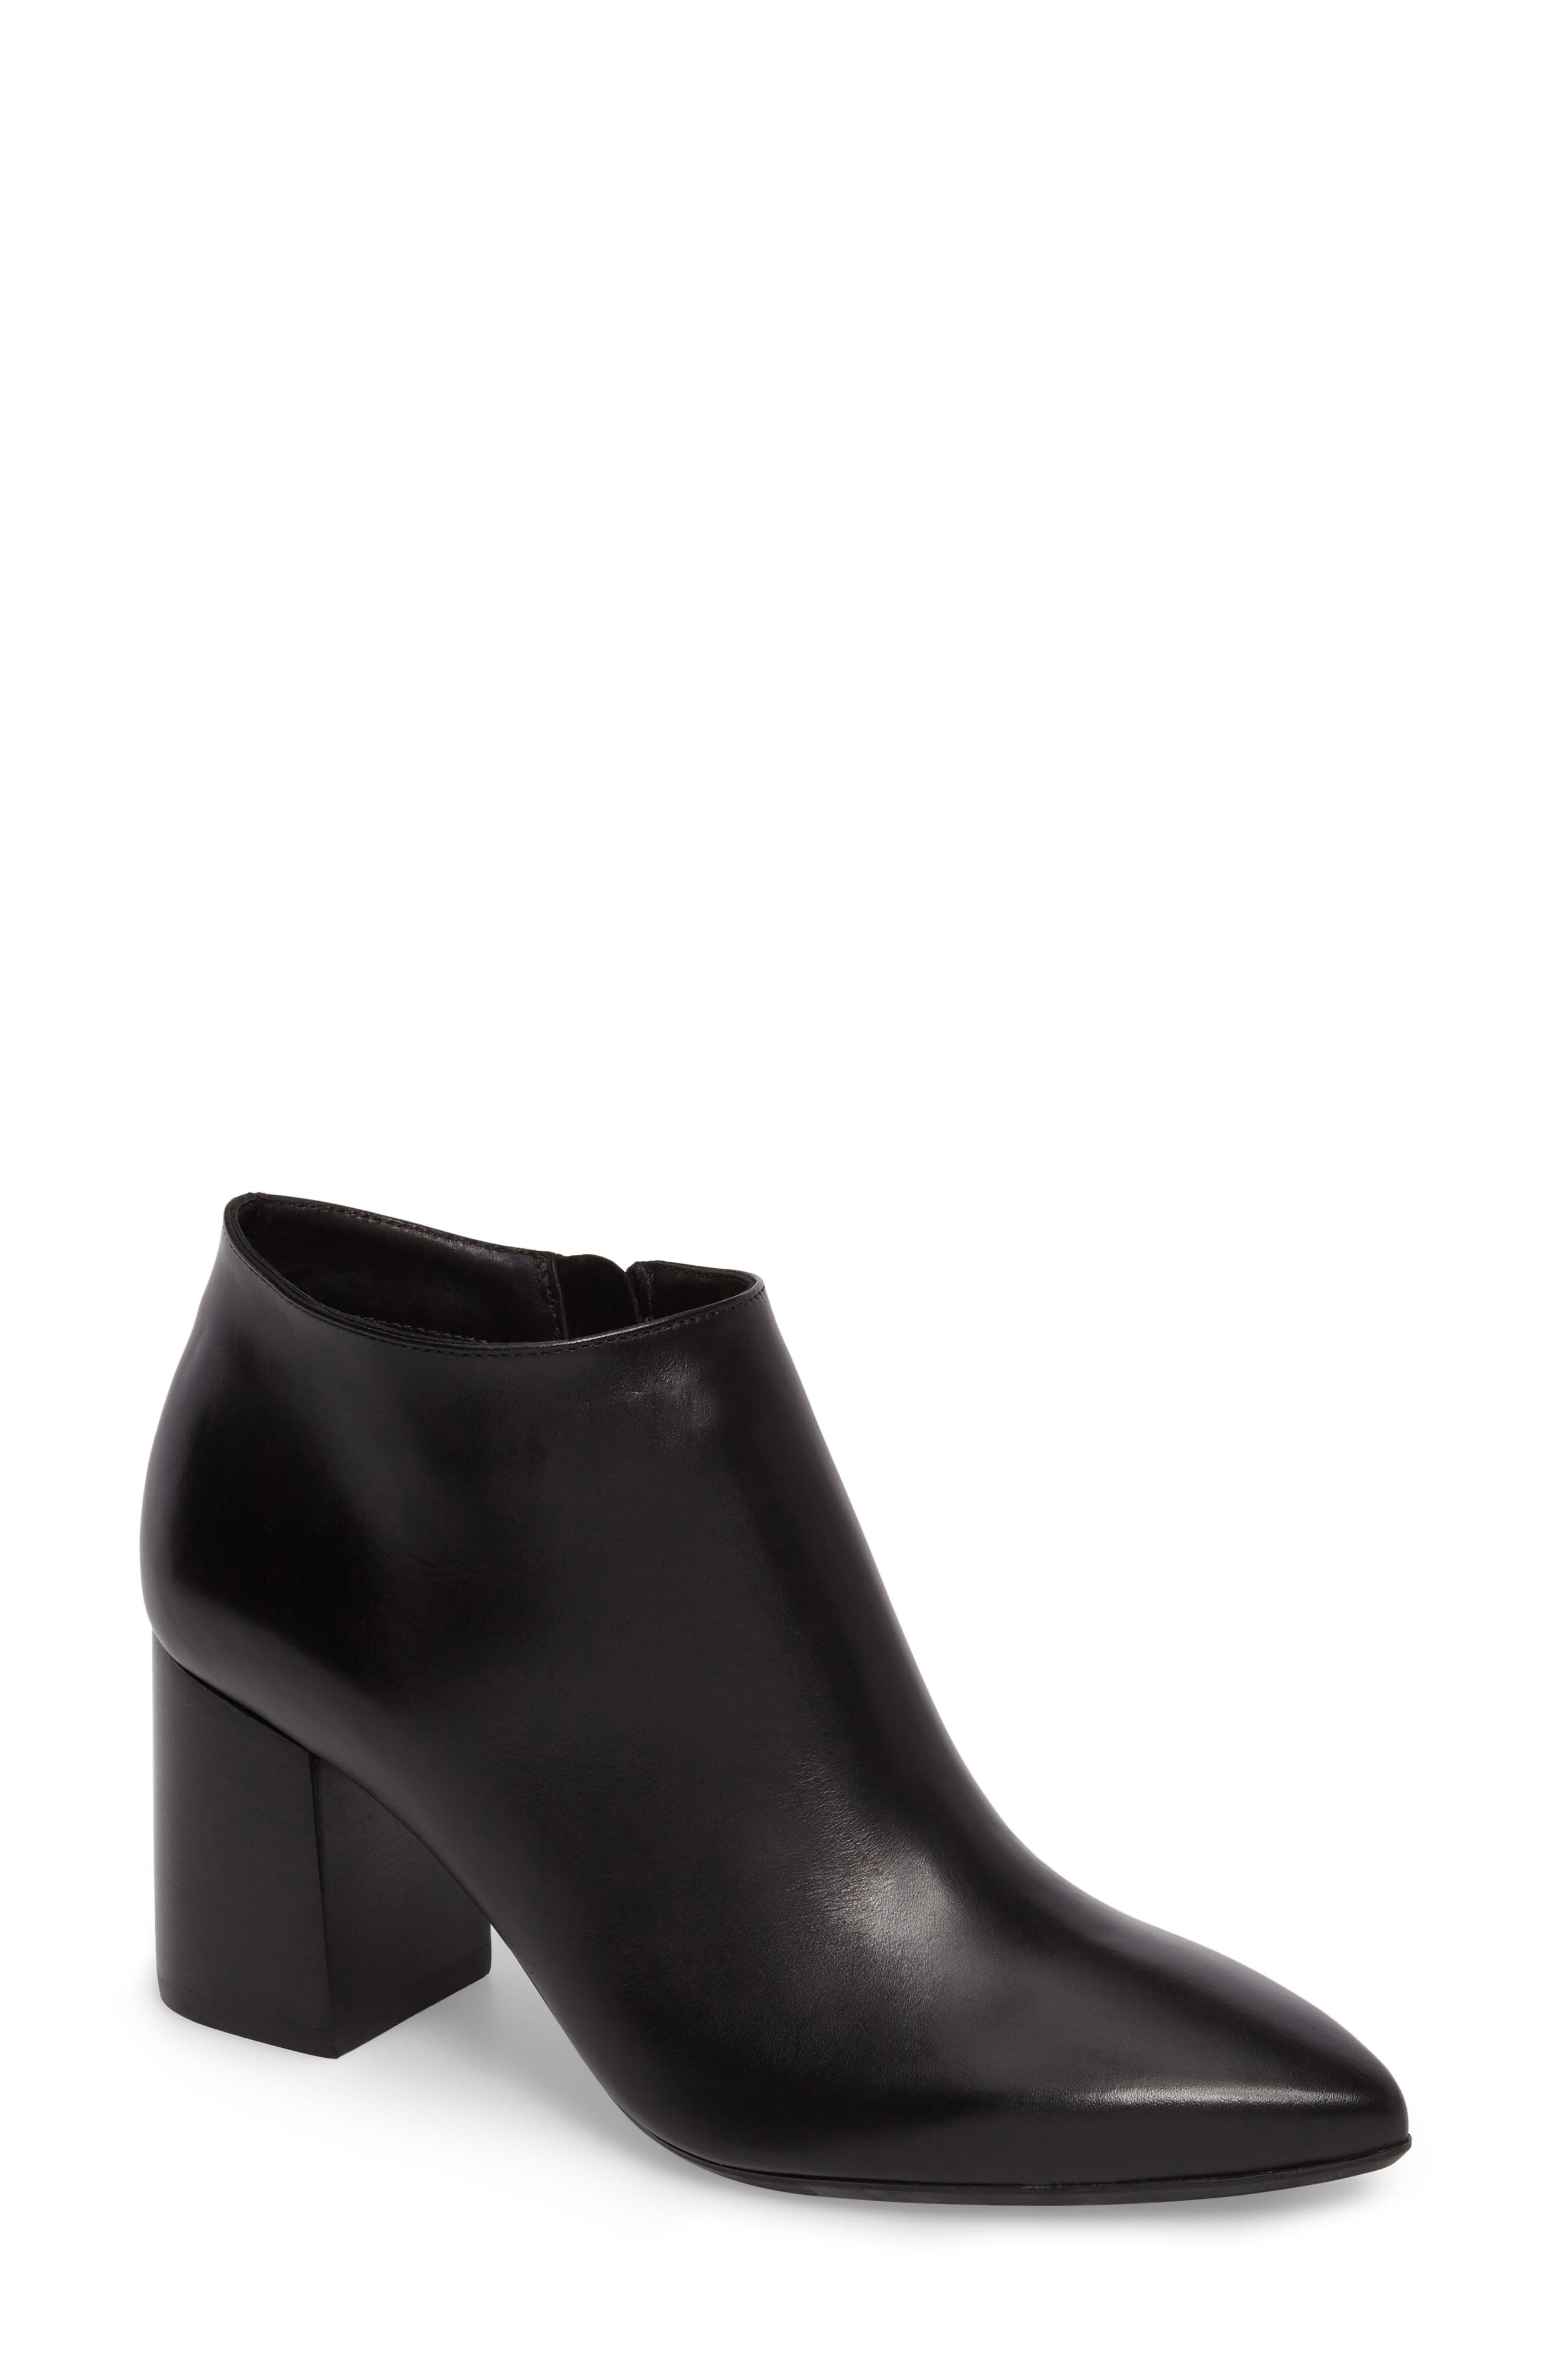 Maria Pointy Toe Bootie,                             Main thumbnail 1, color,                             Black Leather